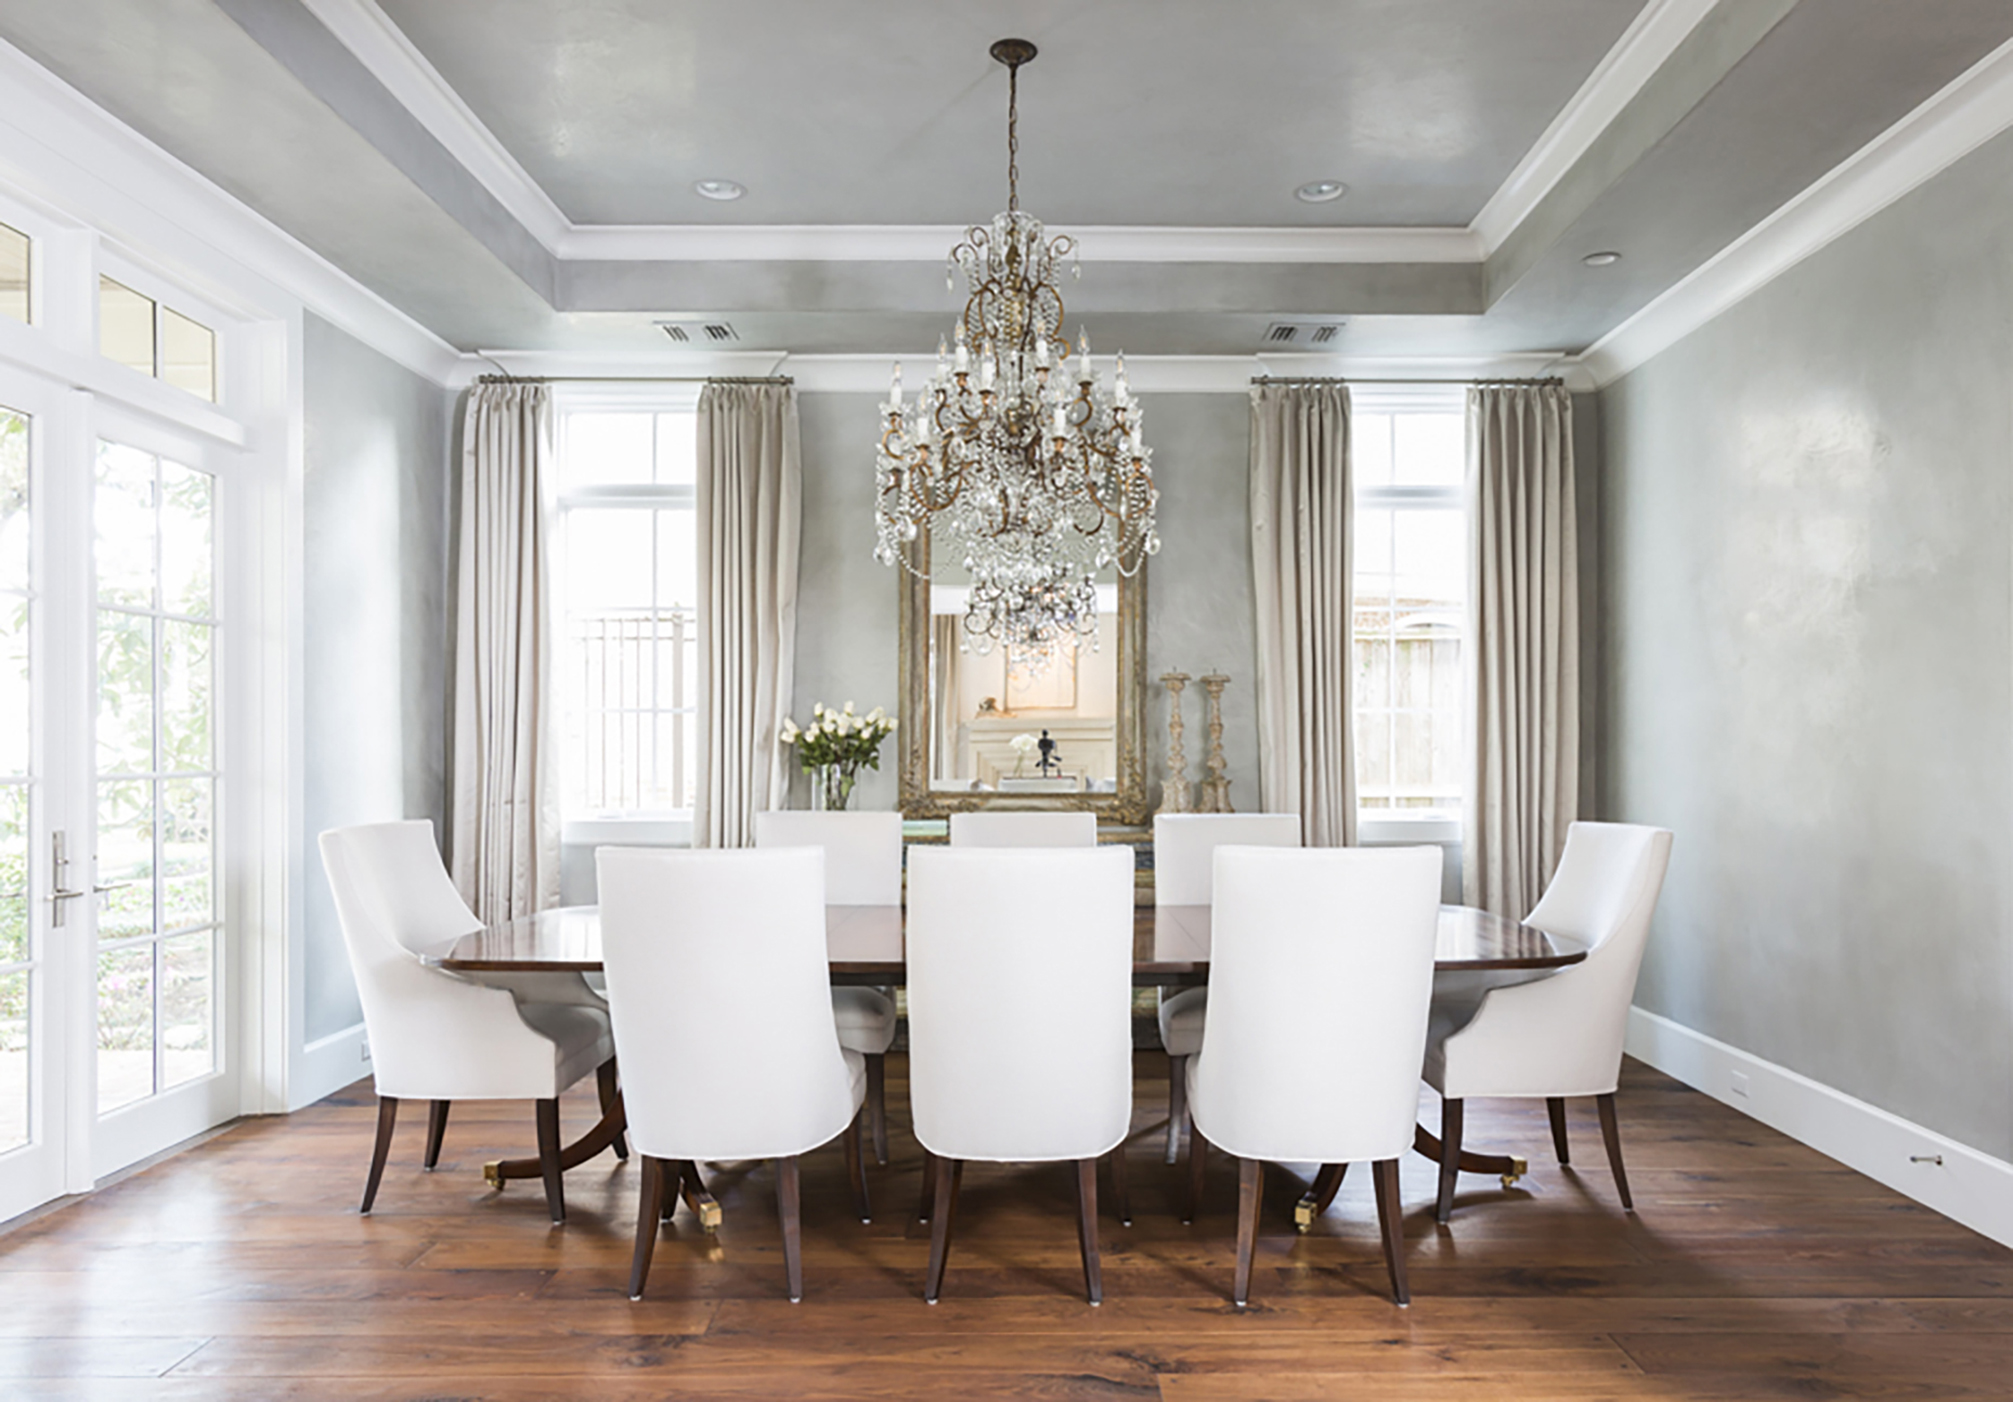 Stunning plastered dining room with antique accents by Talbot Cooley